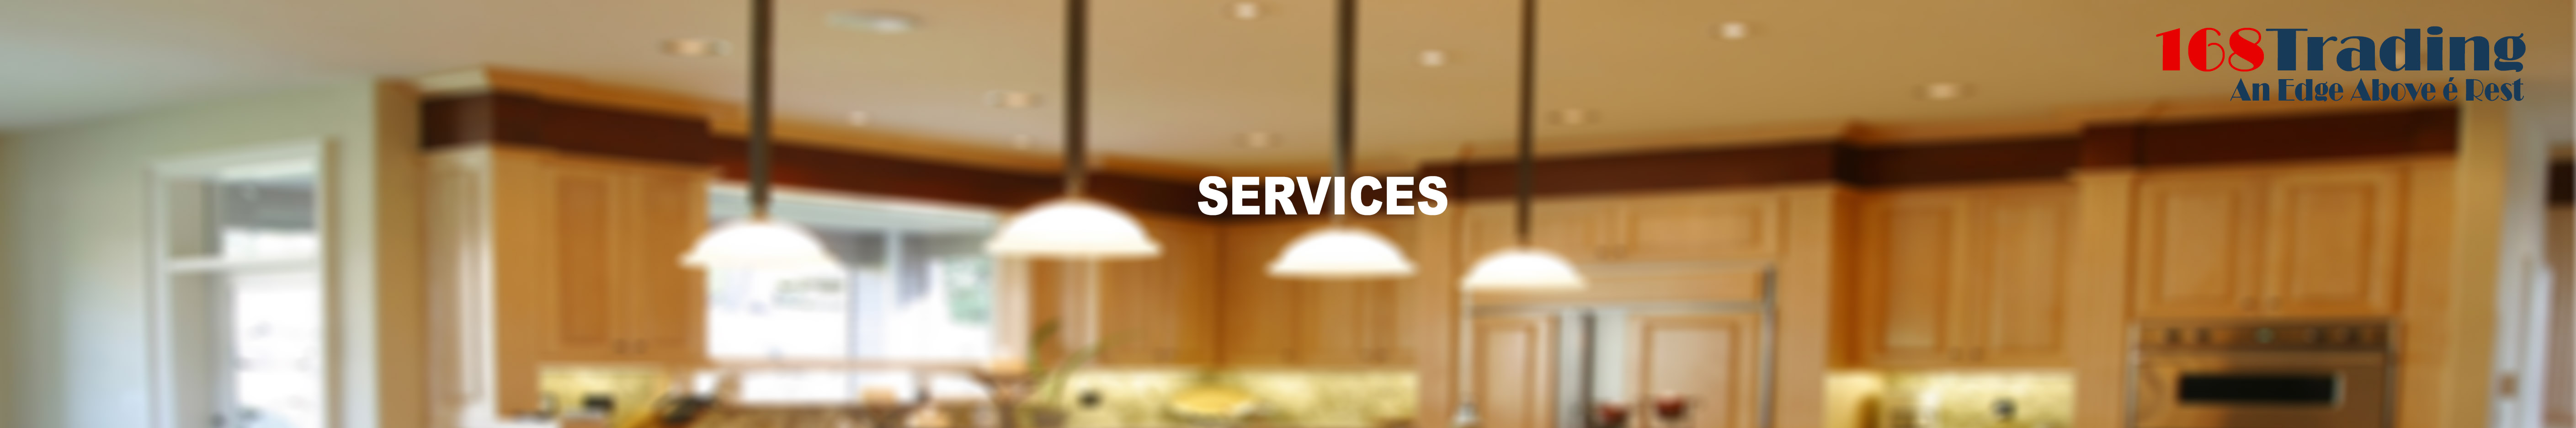 banner_services